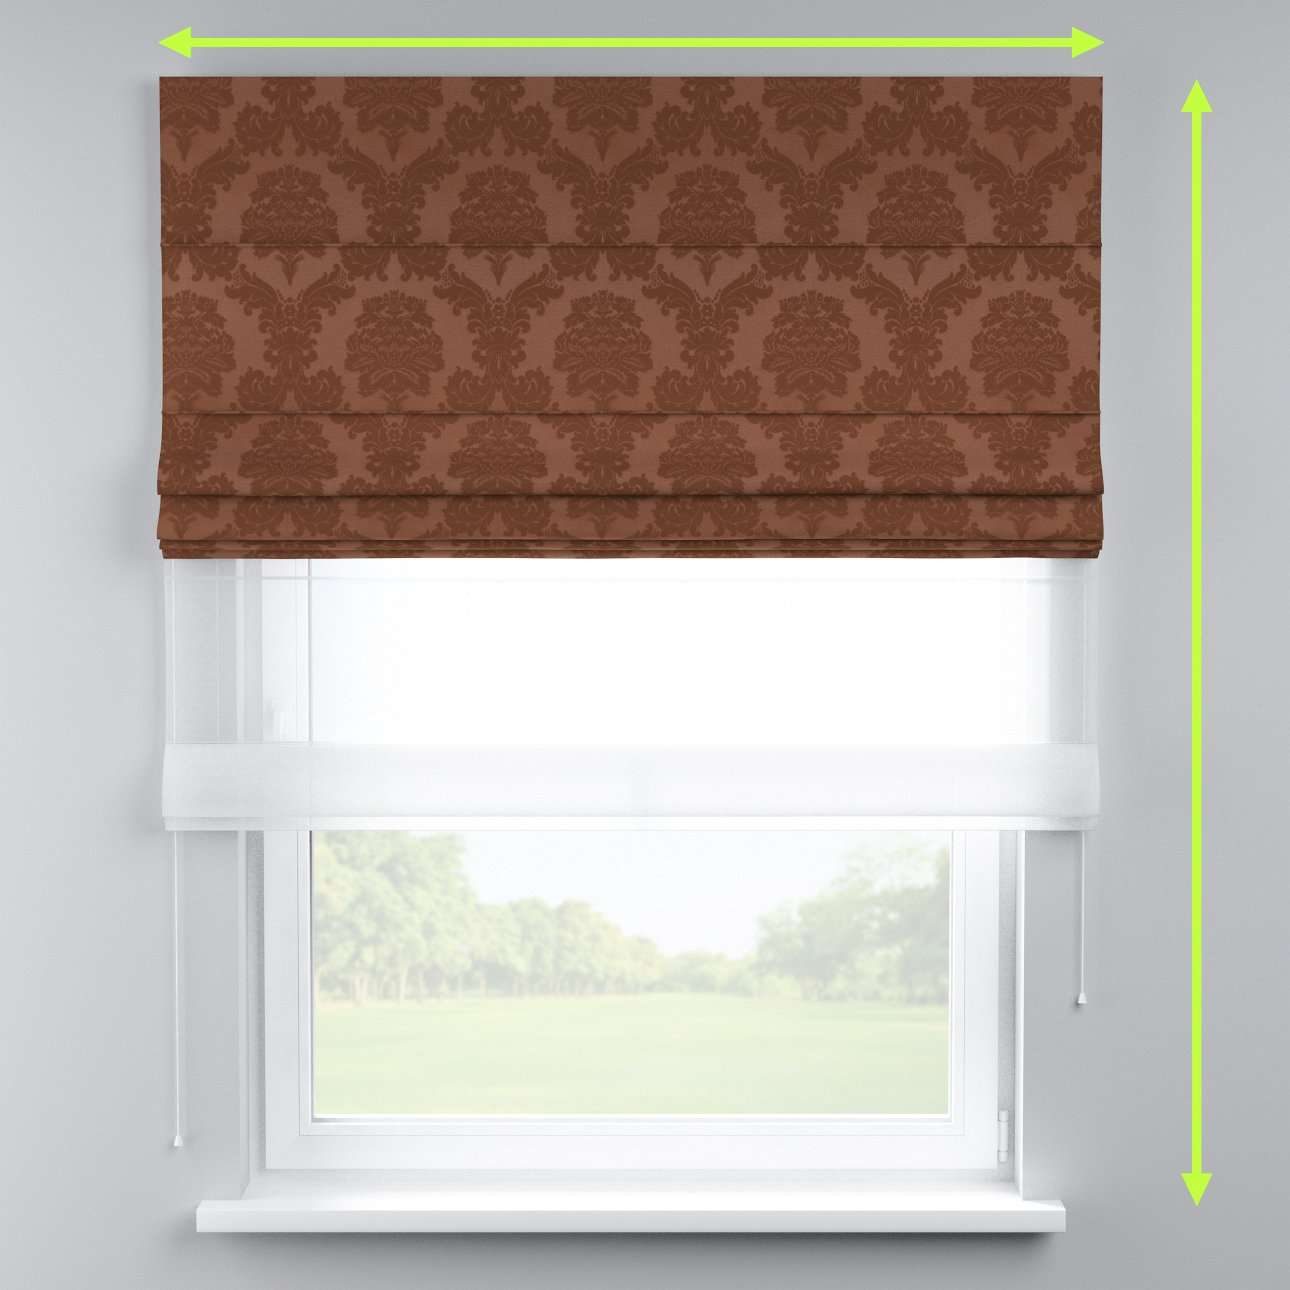 Voile and fabric roman blind (DUO II) in collection Damasco, fabric: 613-88